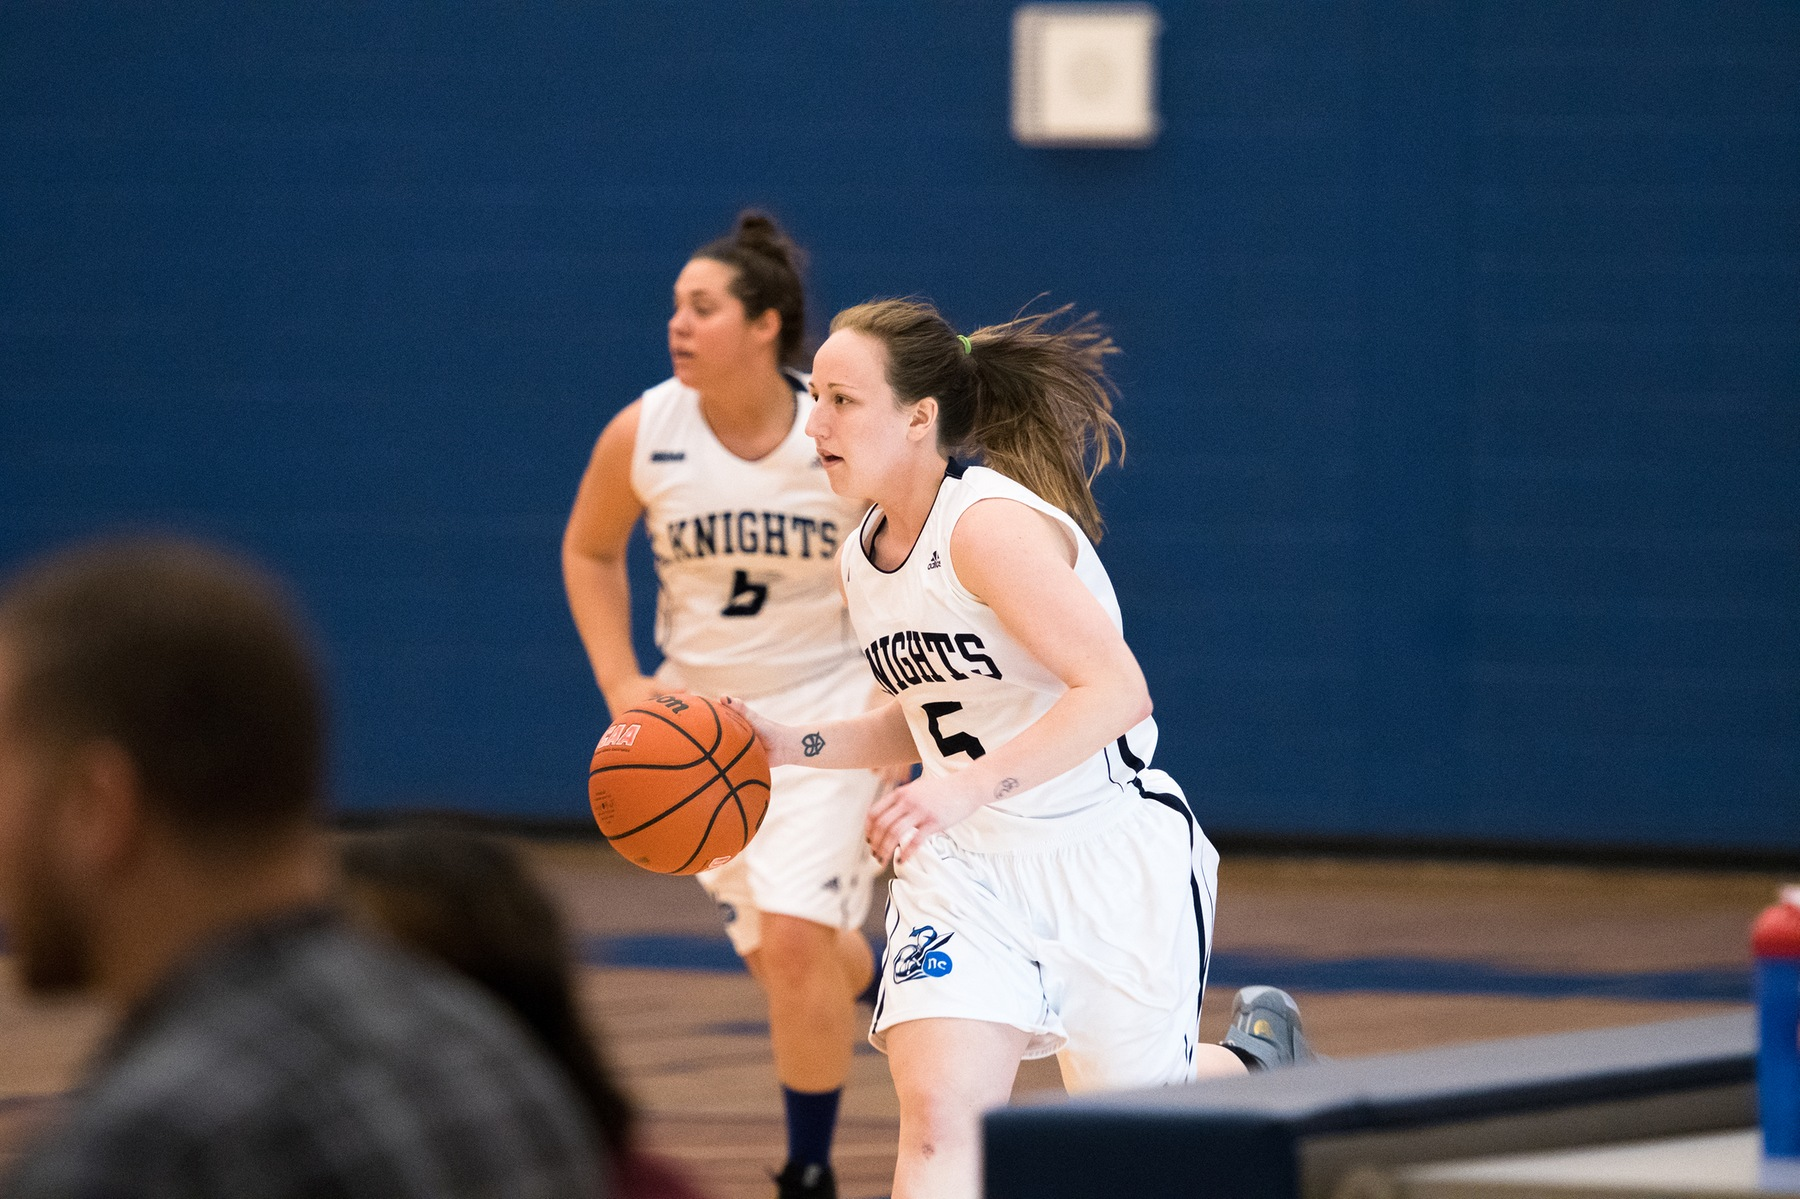 PHOTOS: Women's Basketball Playoffs vs. Centennial